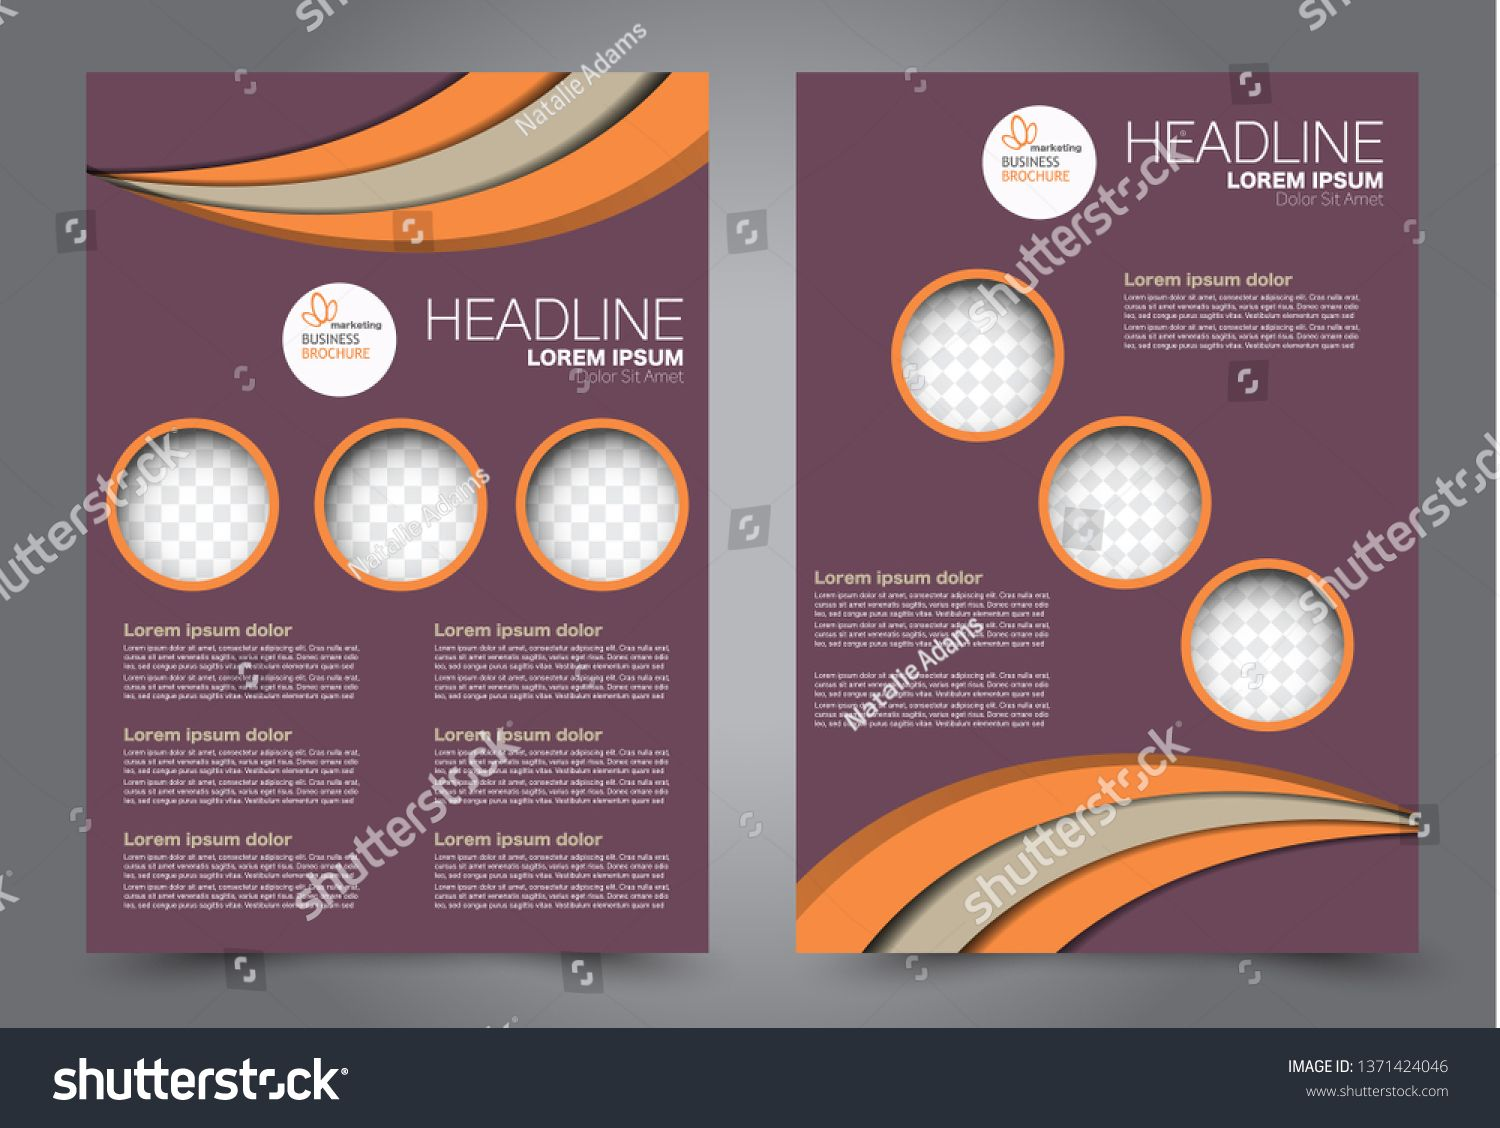 Flyer template. Brochur design for a business, education